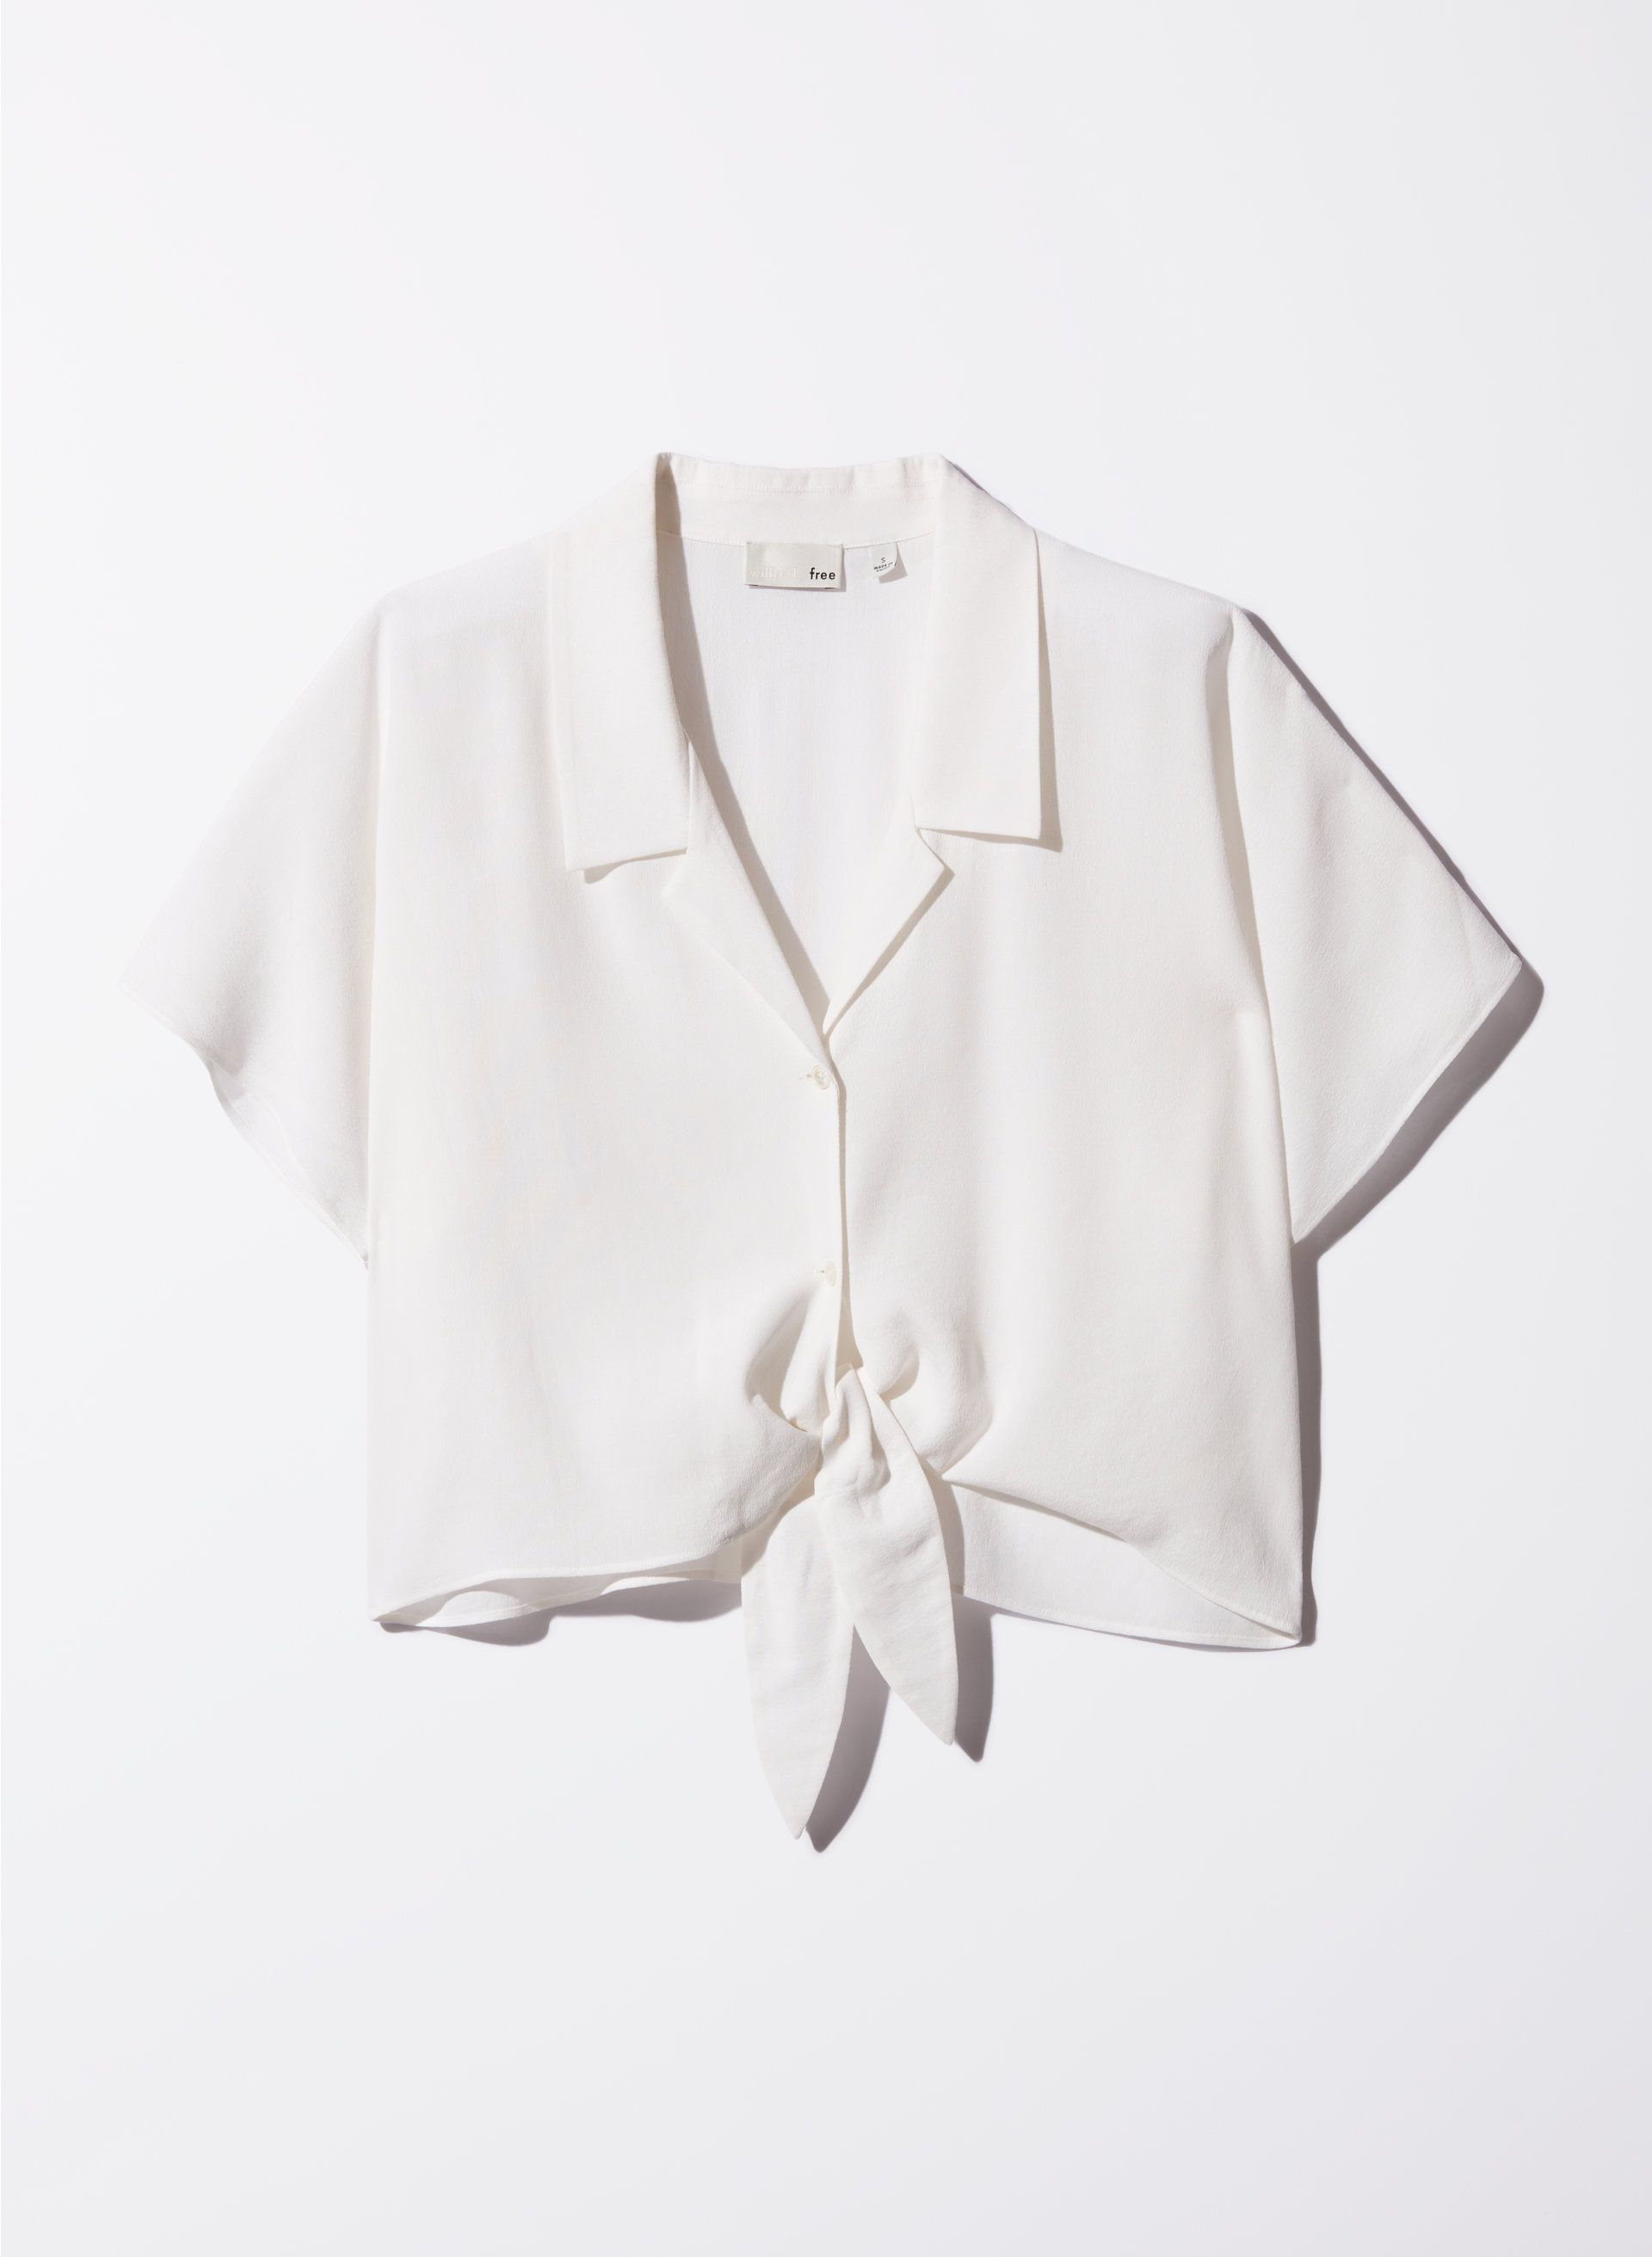 bfea4d024 The tie-front blouse | Fashion | Fashion outfits, Fashion, 2000s ...